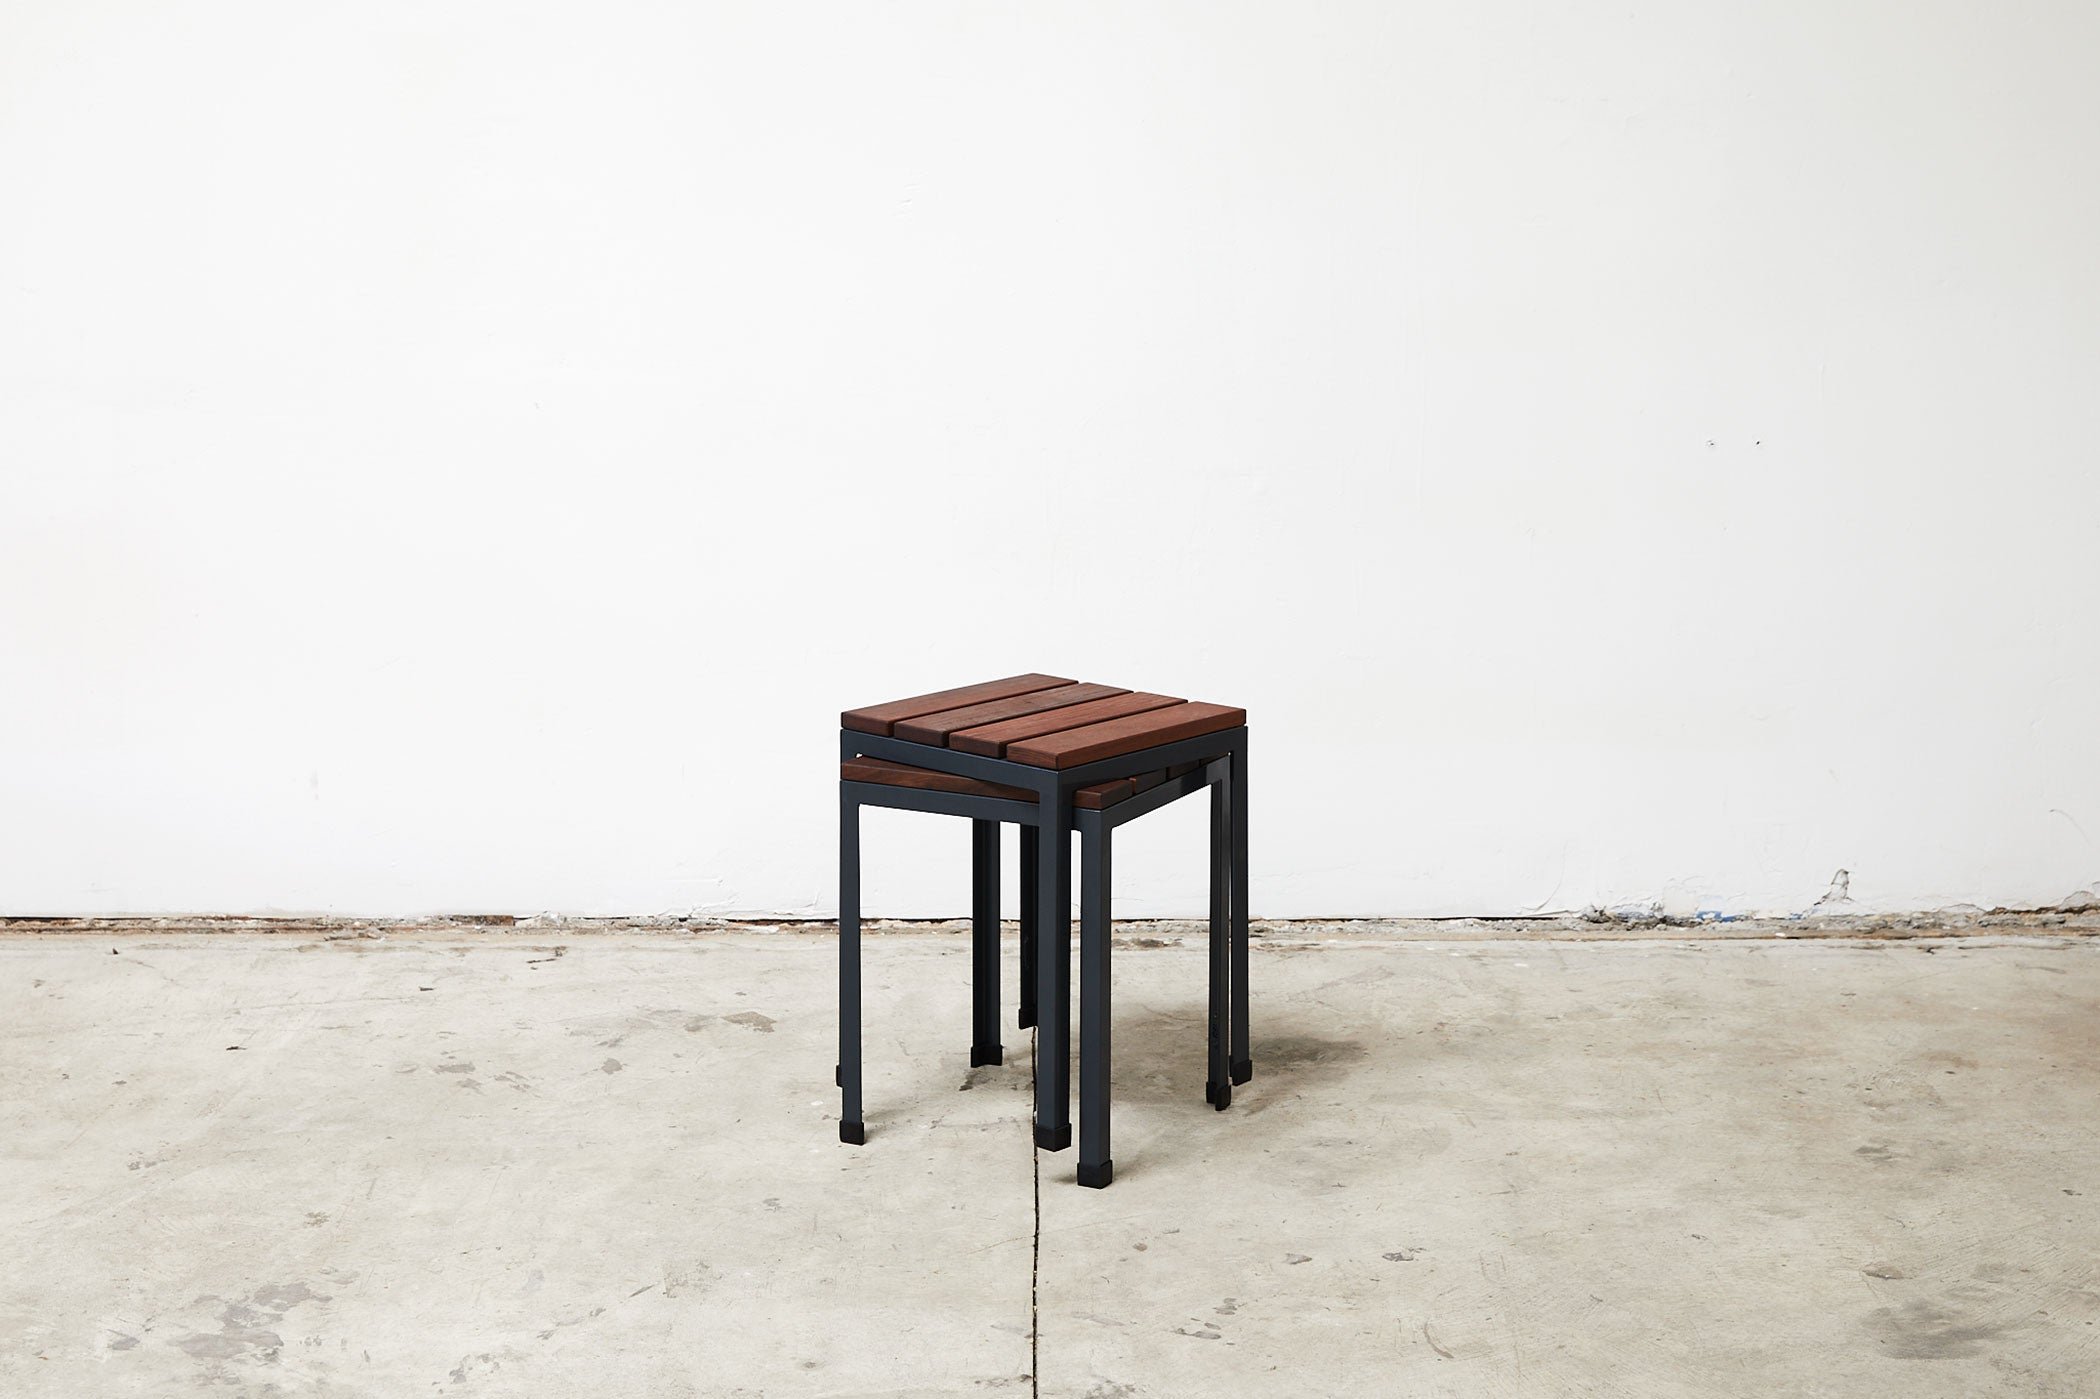 RAD Furniture's Slatted Wood Knockaround Stools - stacked